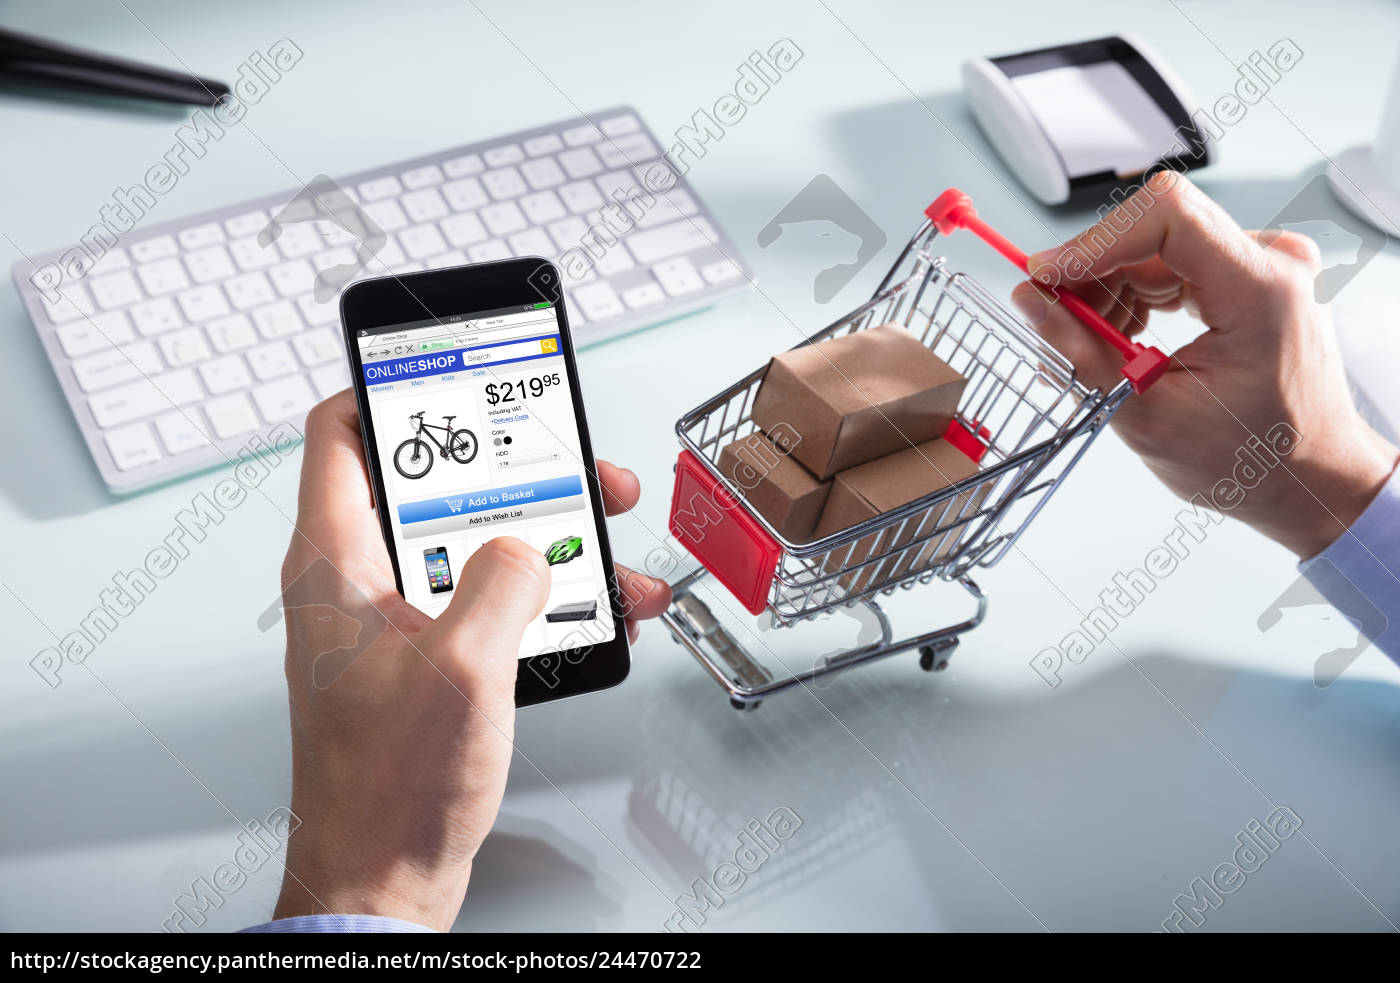 7da10348250 Person Shopping Online On Mobile Phone - Stock image -  24470722 ...